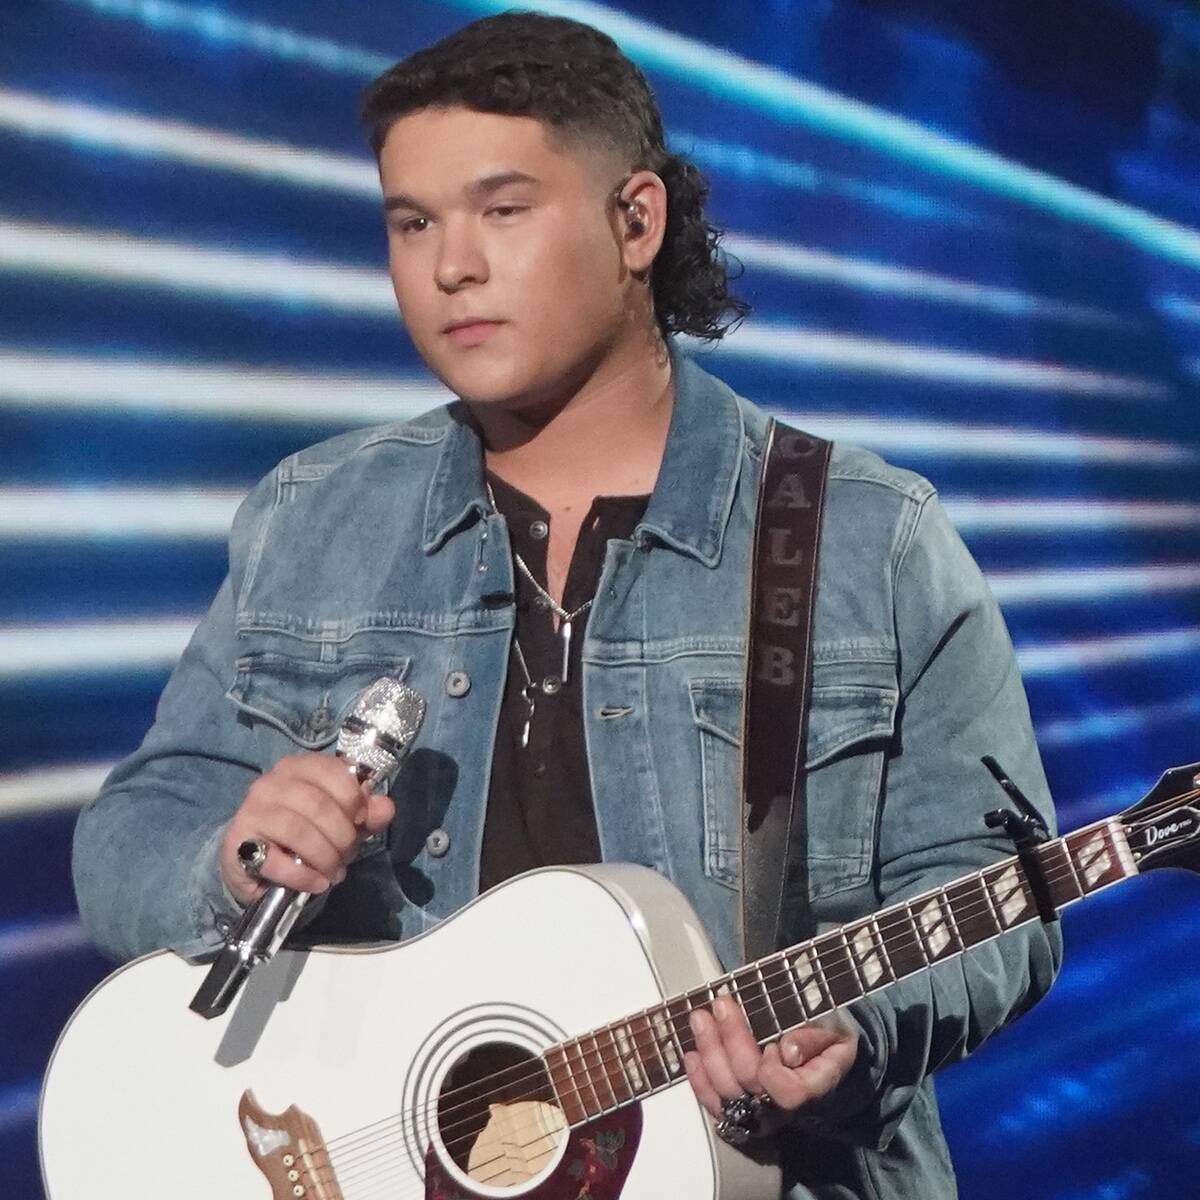 Caleb Kennedy Compares Pressure of American Idol to Slap in the Face After Controversial Exit